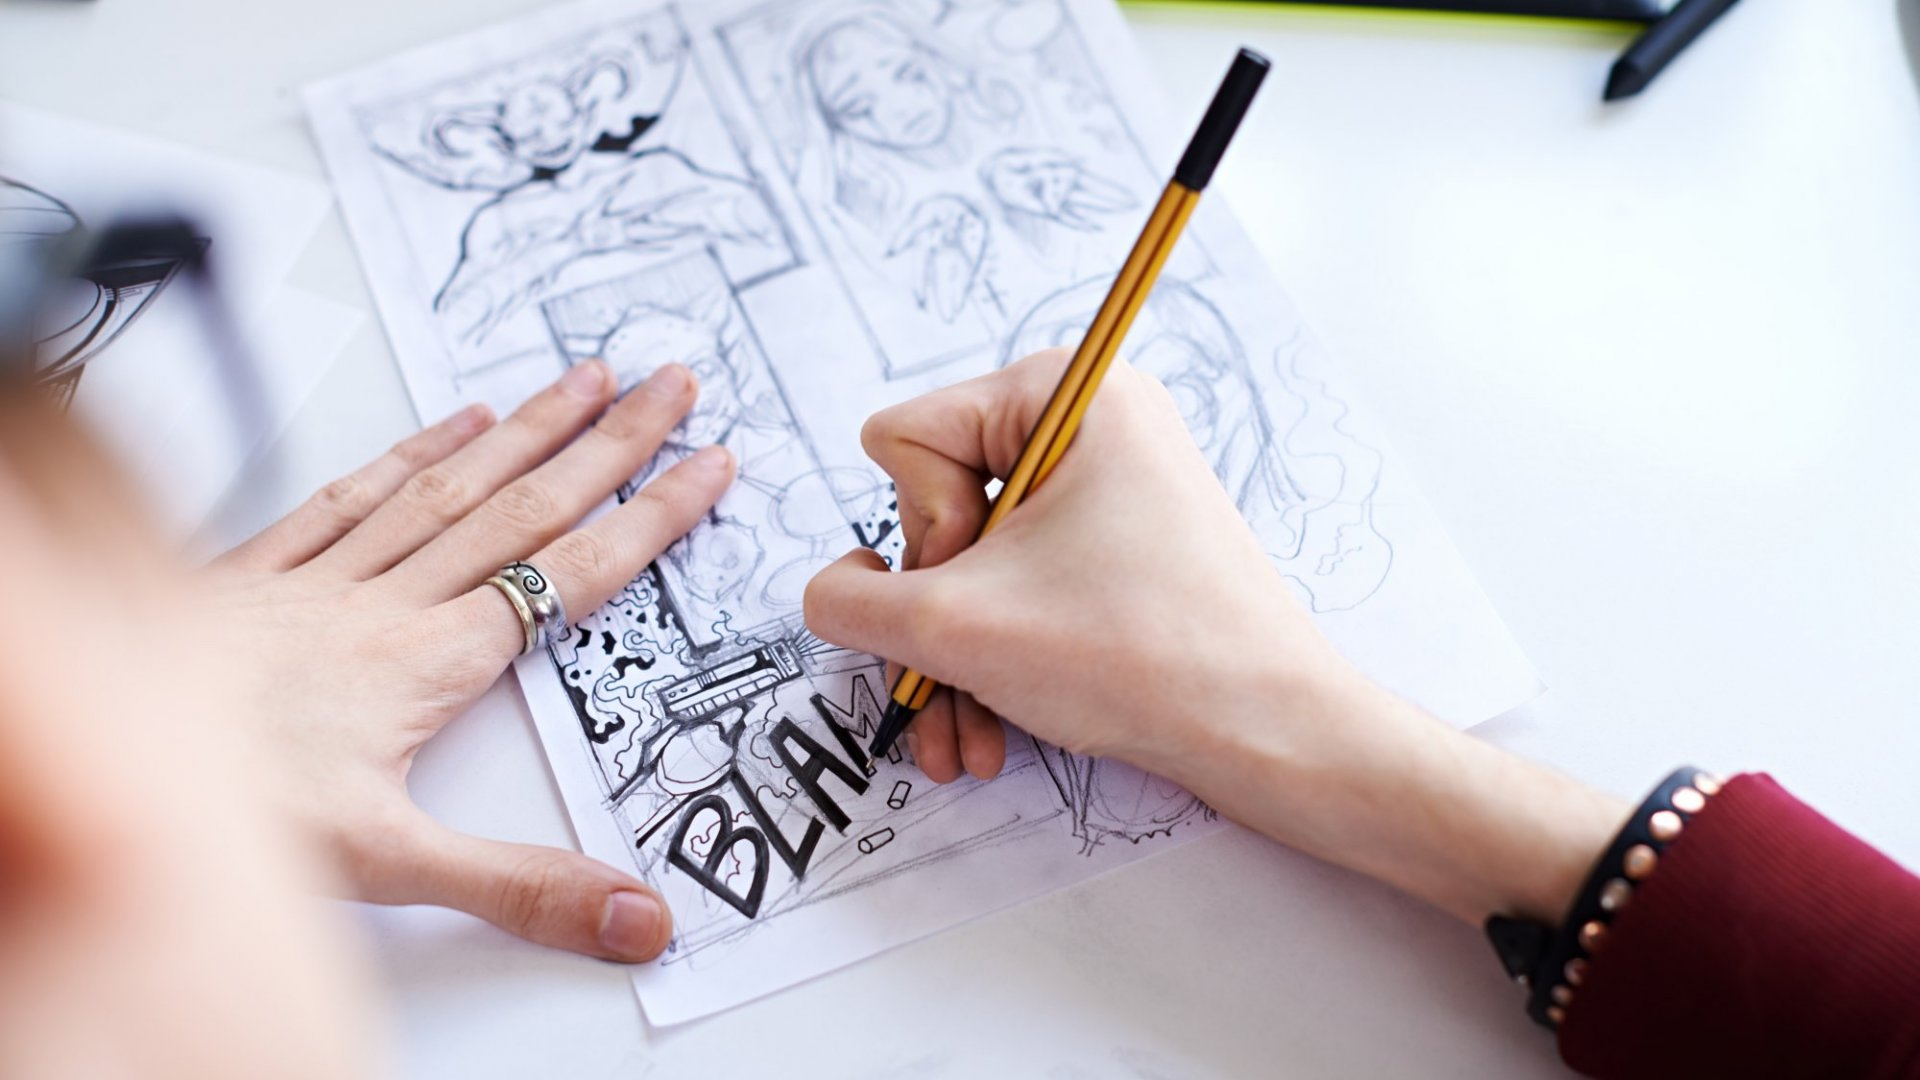 Want to Turn Your Comic Book Idea Into a Million-Dollar Business? Here's the First Step